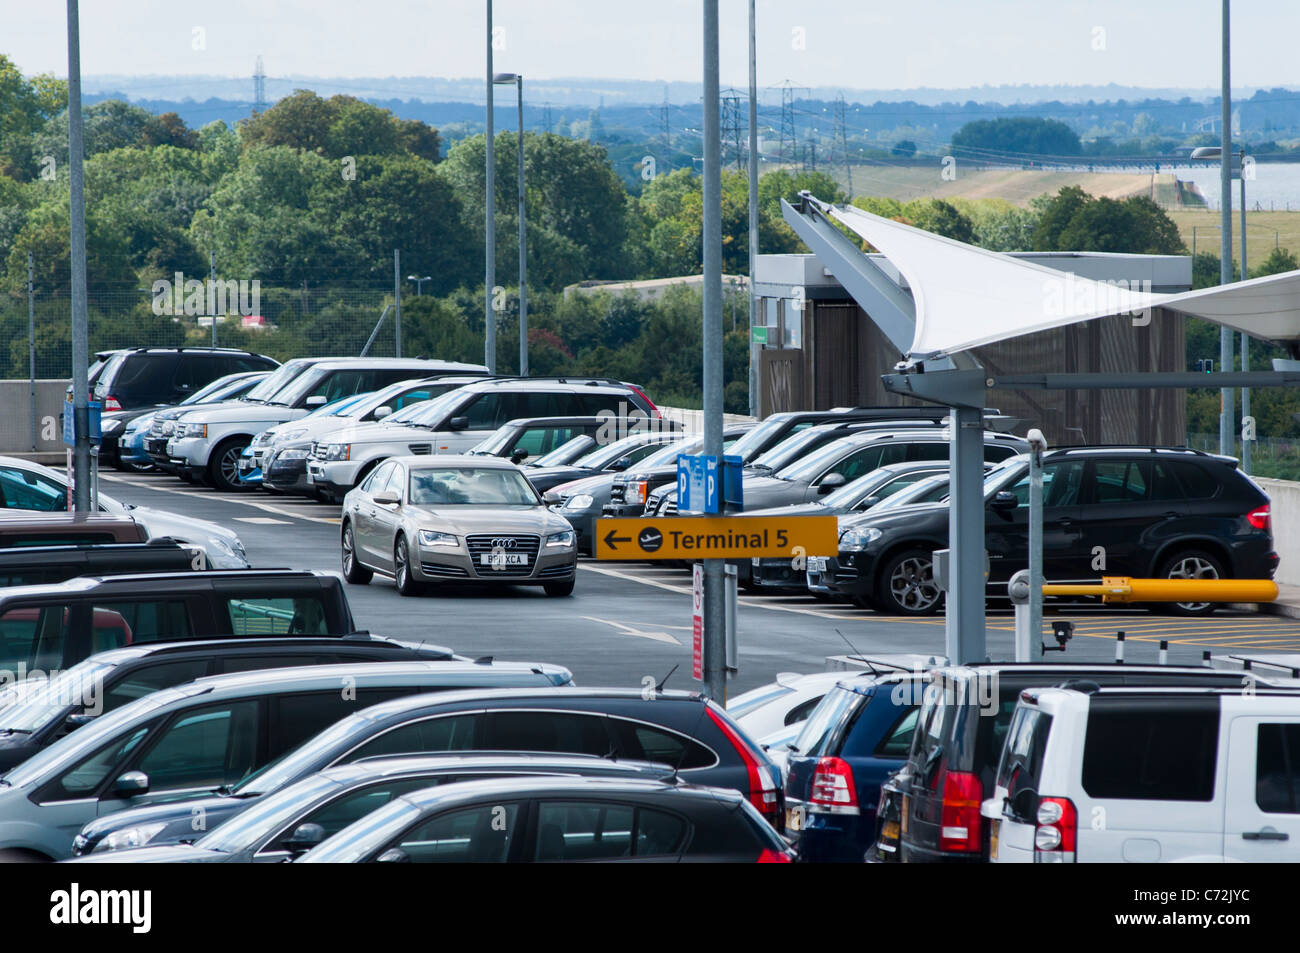 Heathrow airport car park stock photos heathrow airport car park terminal 5 car parking heathrow airport london uk stock image m4hsunfo